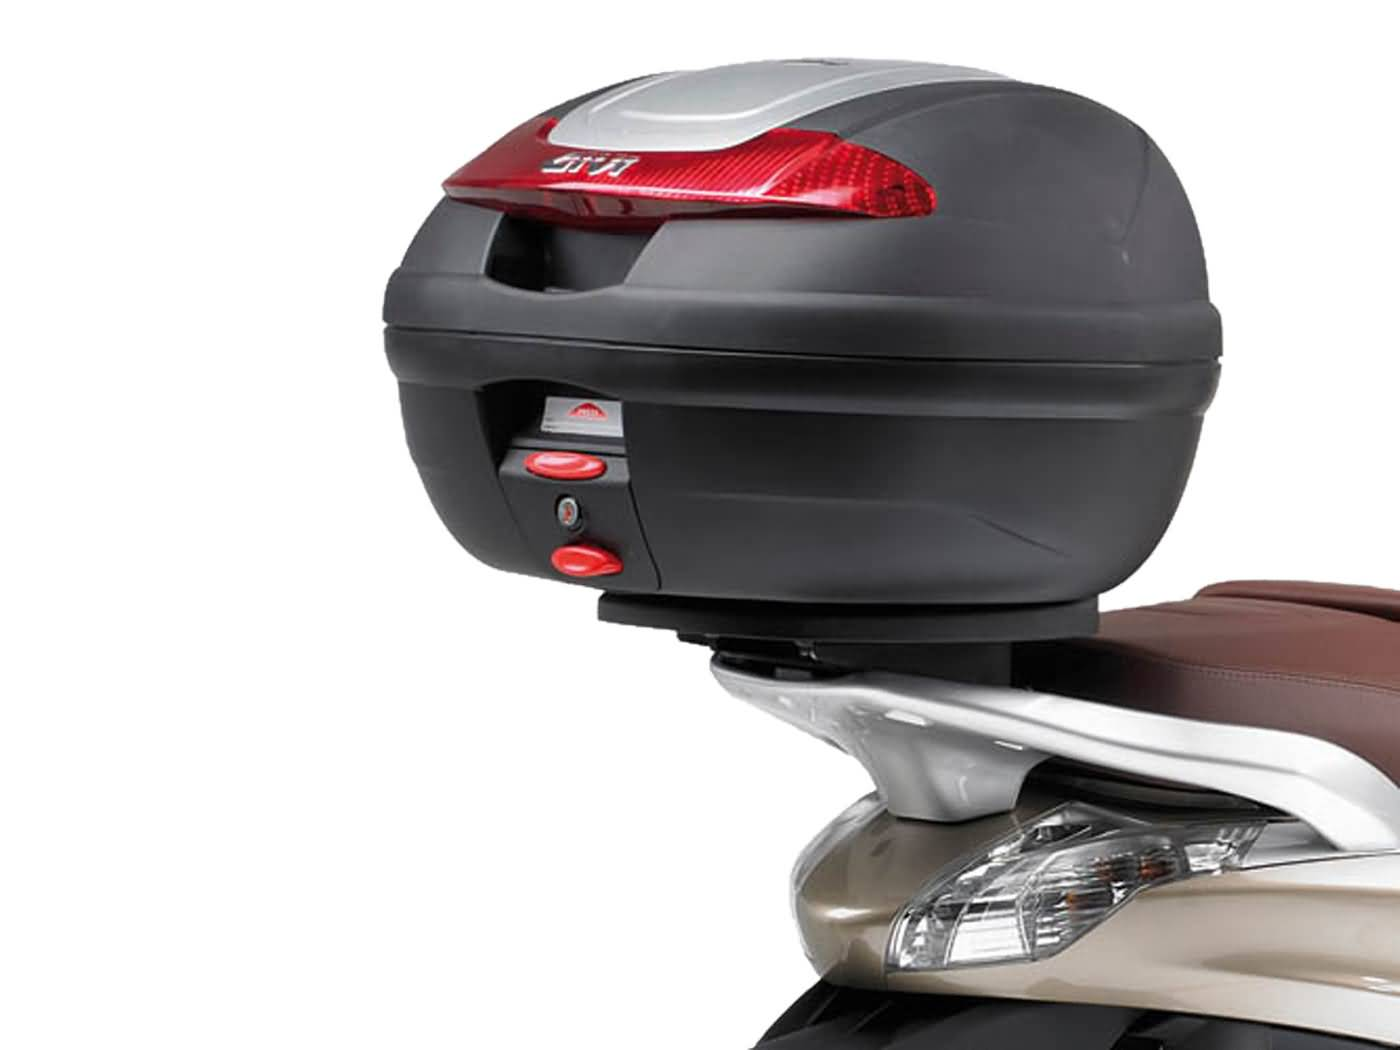 top case givi monolock scooter trunk mounting for piaggio beverly 125 350ie 2010 2014 scooter. Black Bedroom Furniture Sets. Home Design Ideas